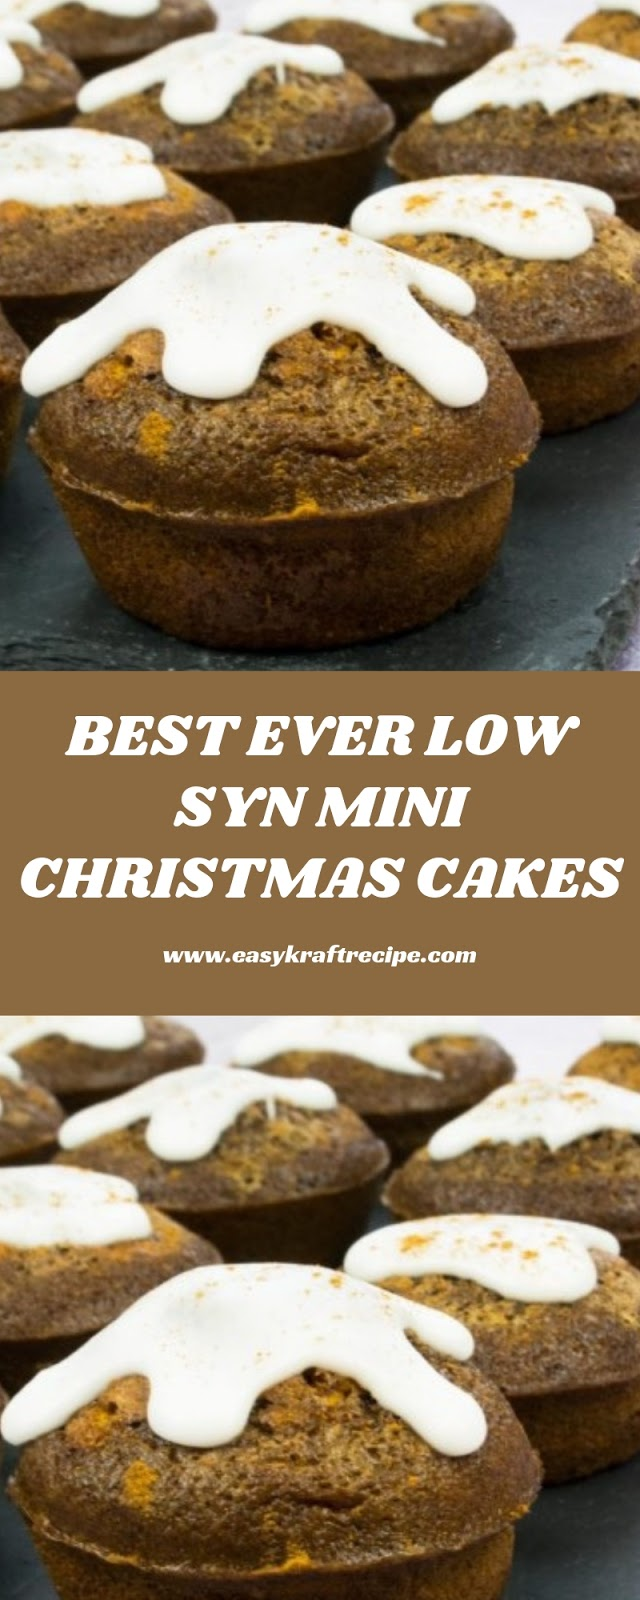 BEST EVER LOW SYN MINI CHRISTMAS CAKES